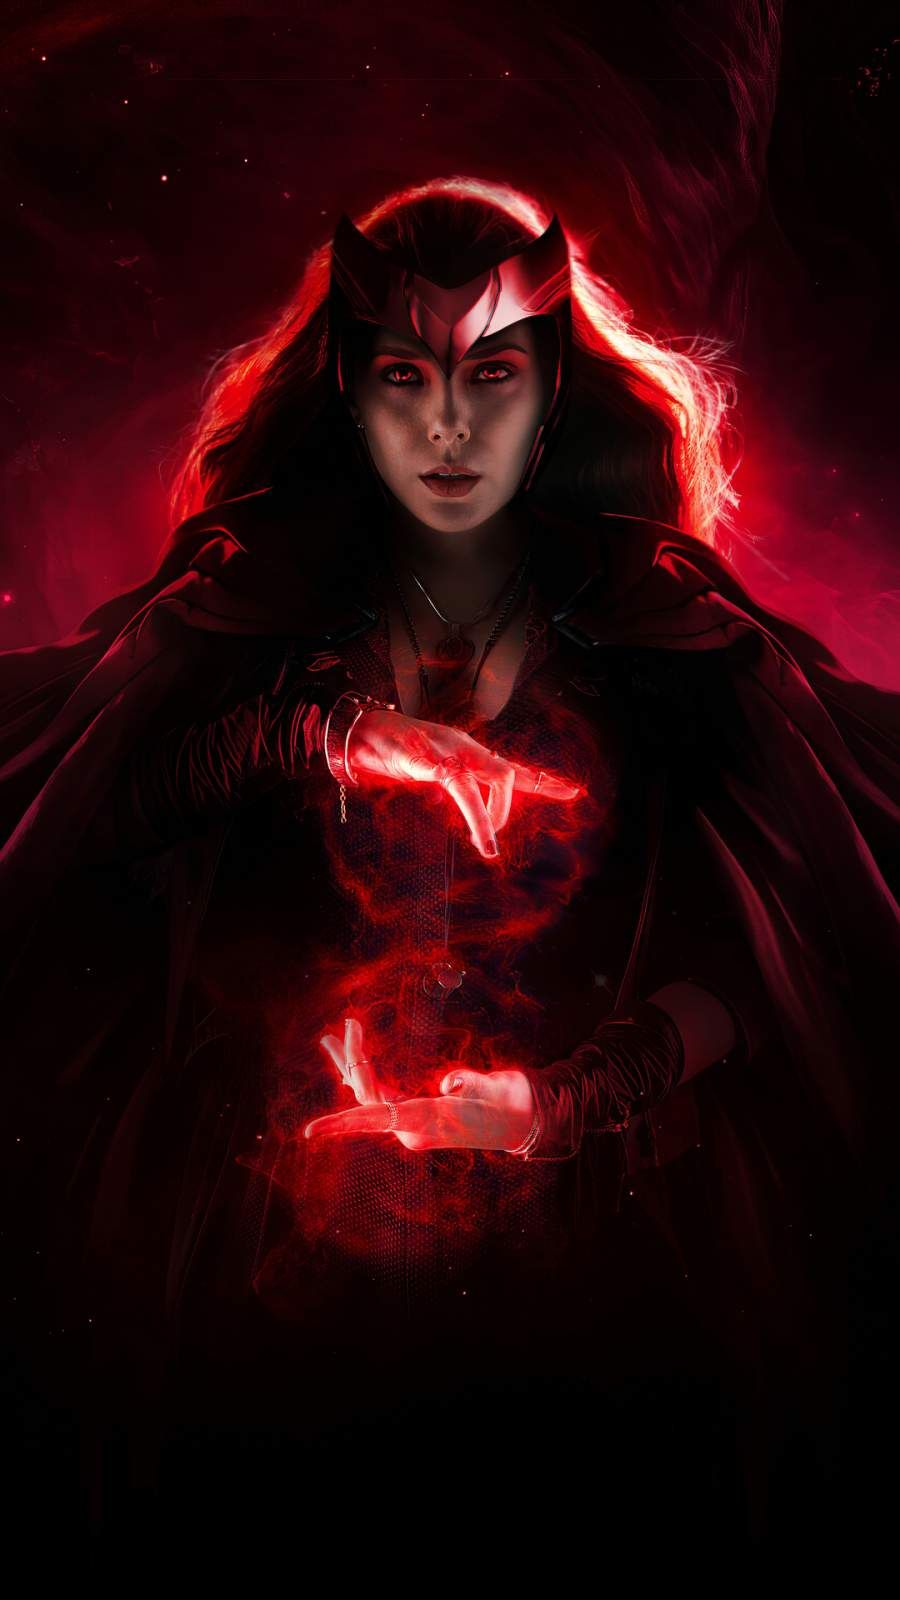 Scarlet Witch Iphone Wallpaper Scarlet Witch Marvel Scarlet Witch Comic Scarlet Witch